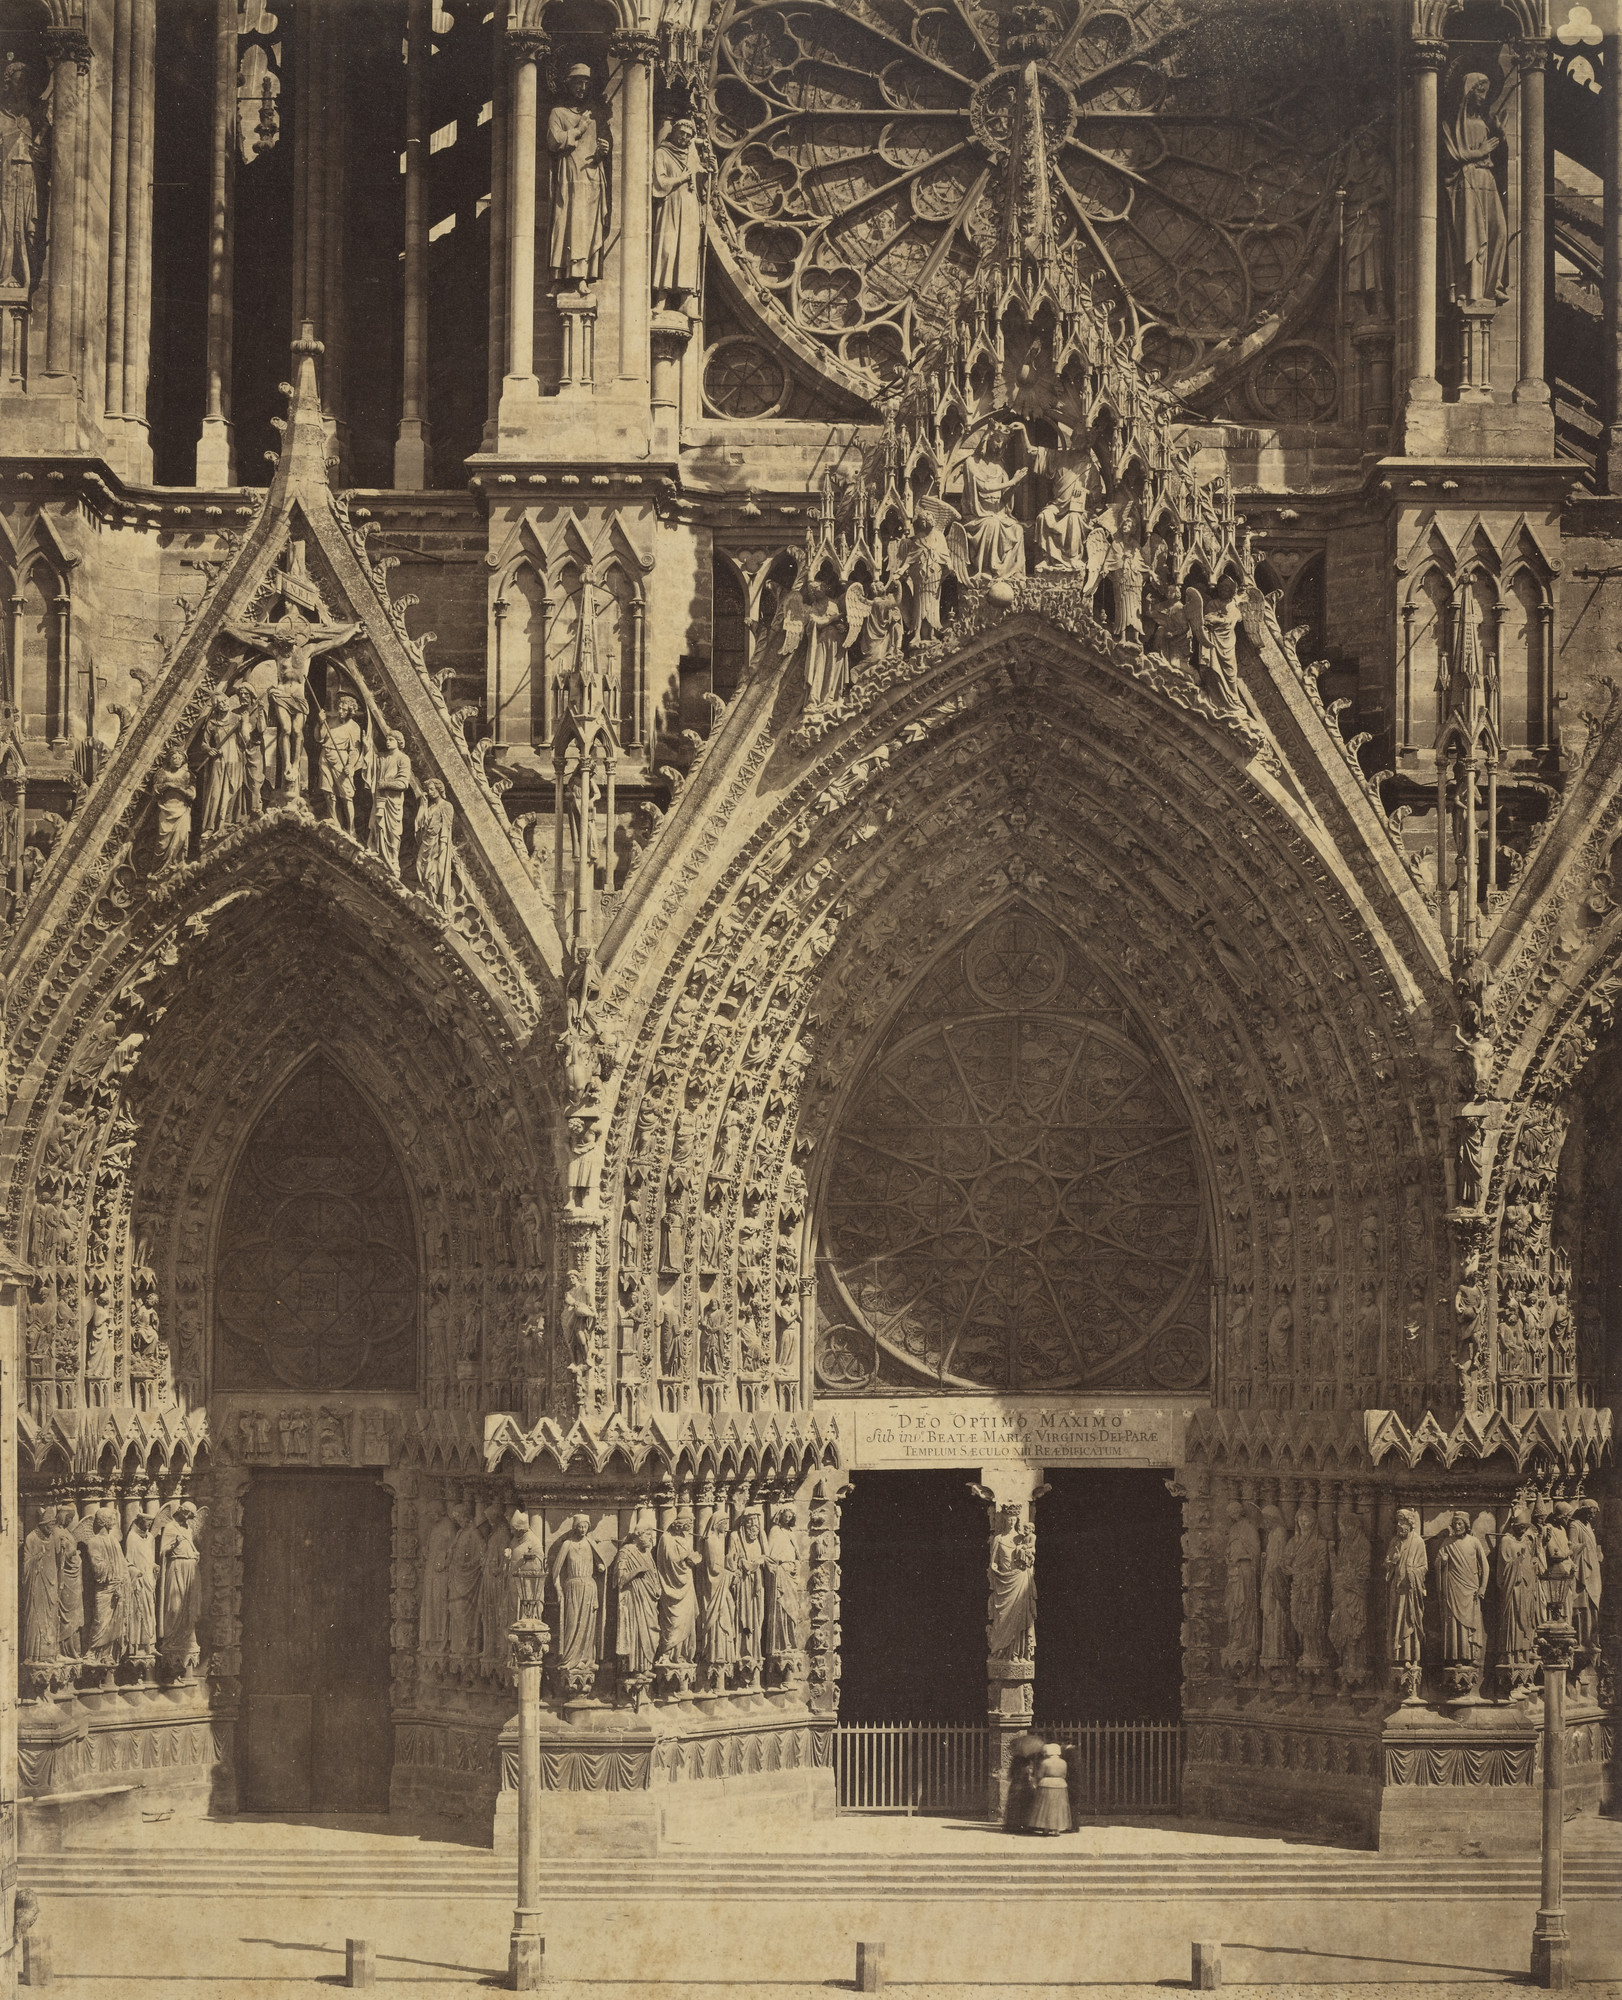 Louis-Auguste Bisson, Auguste-Rosalie Bisson. Reims Cathedral (detail of facade). c. 1855